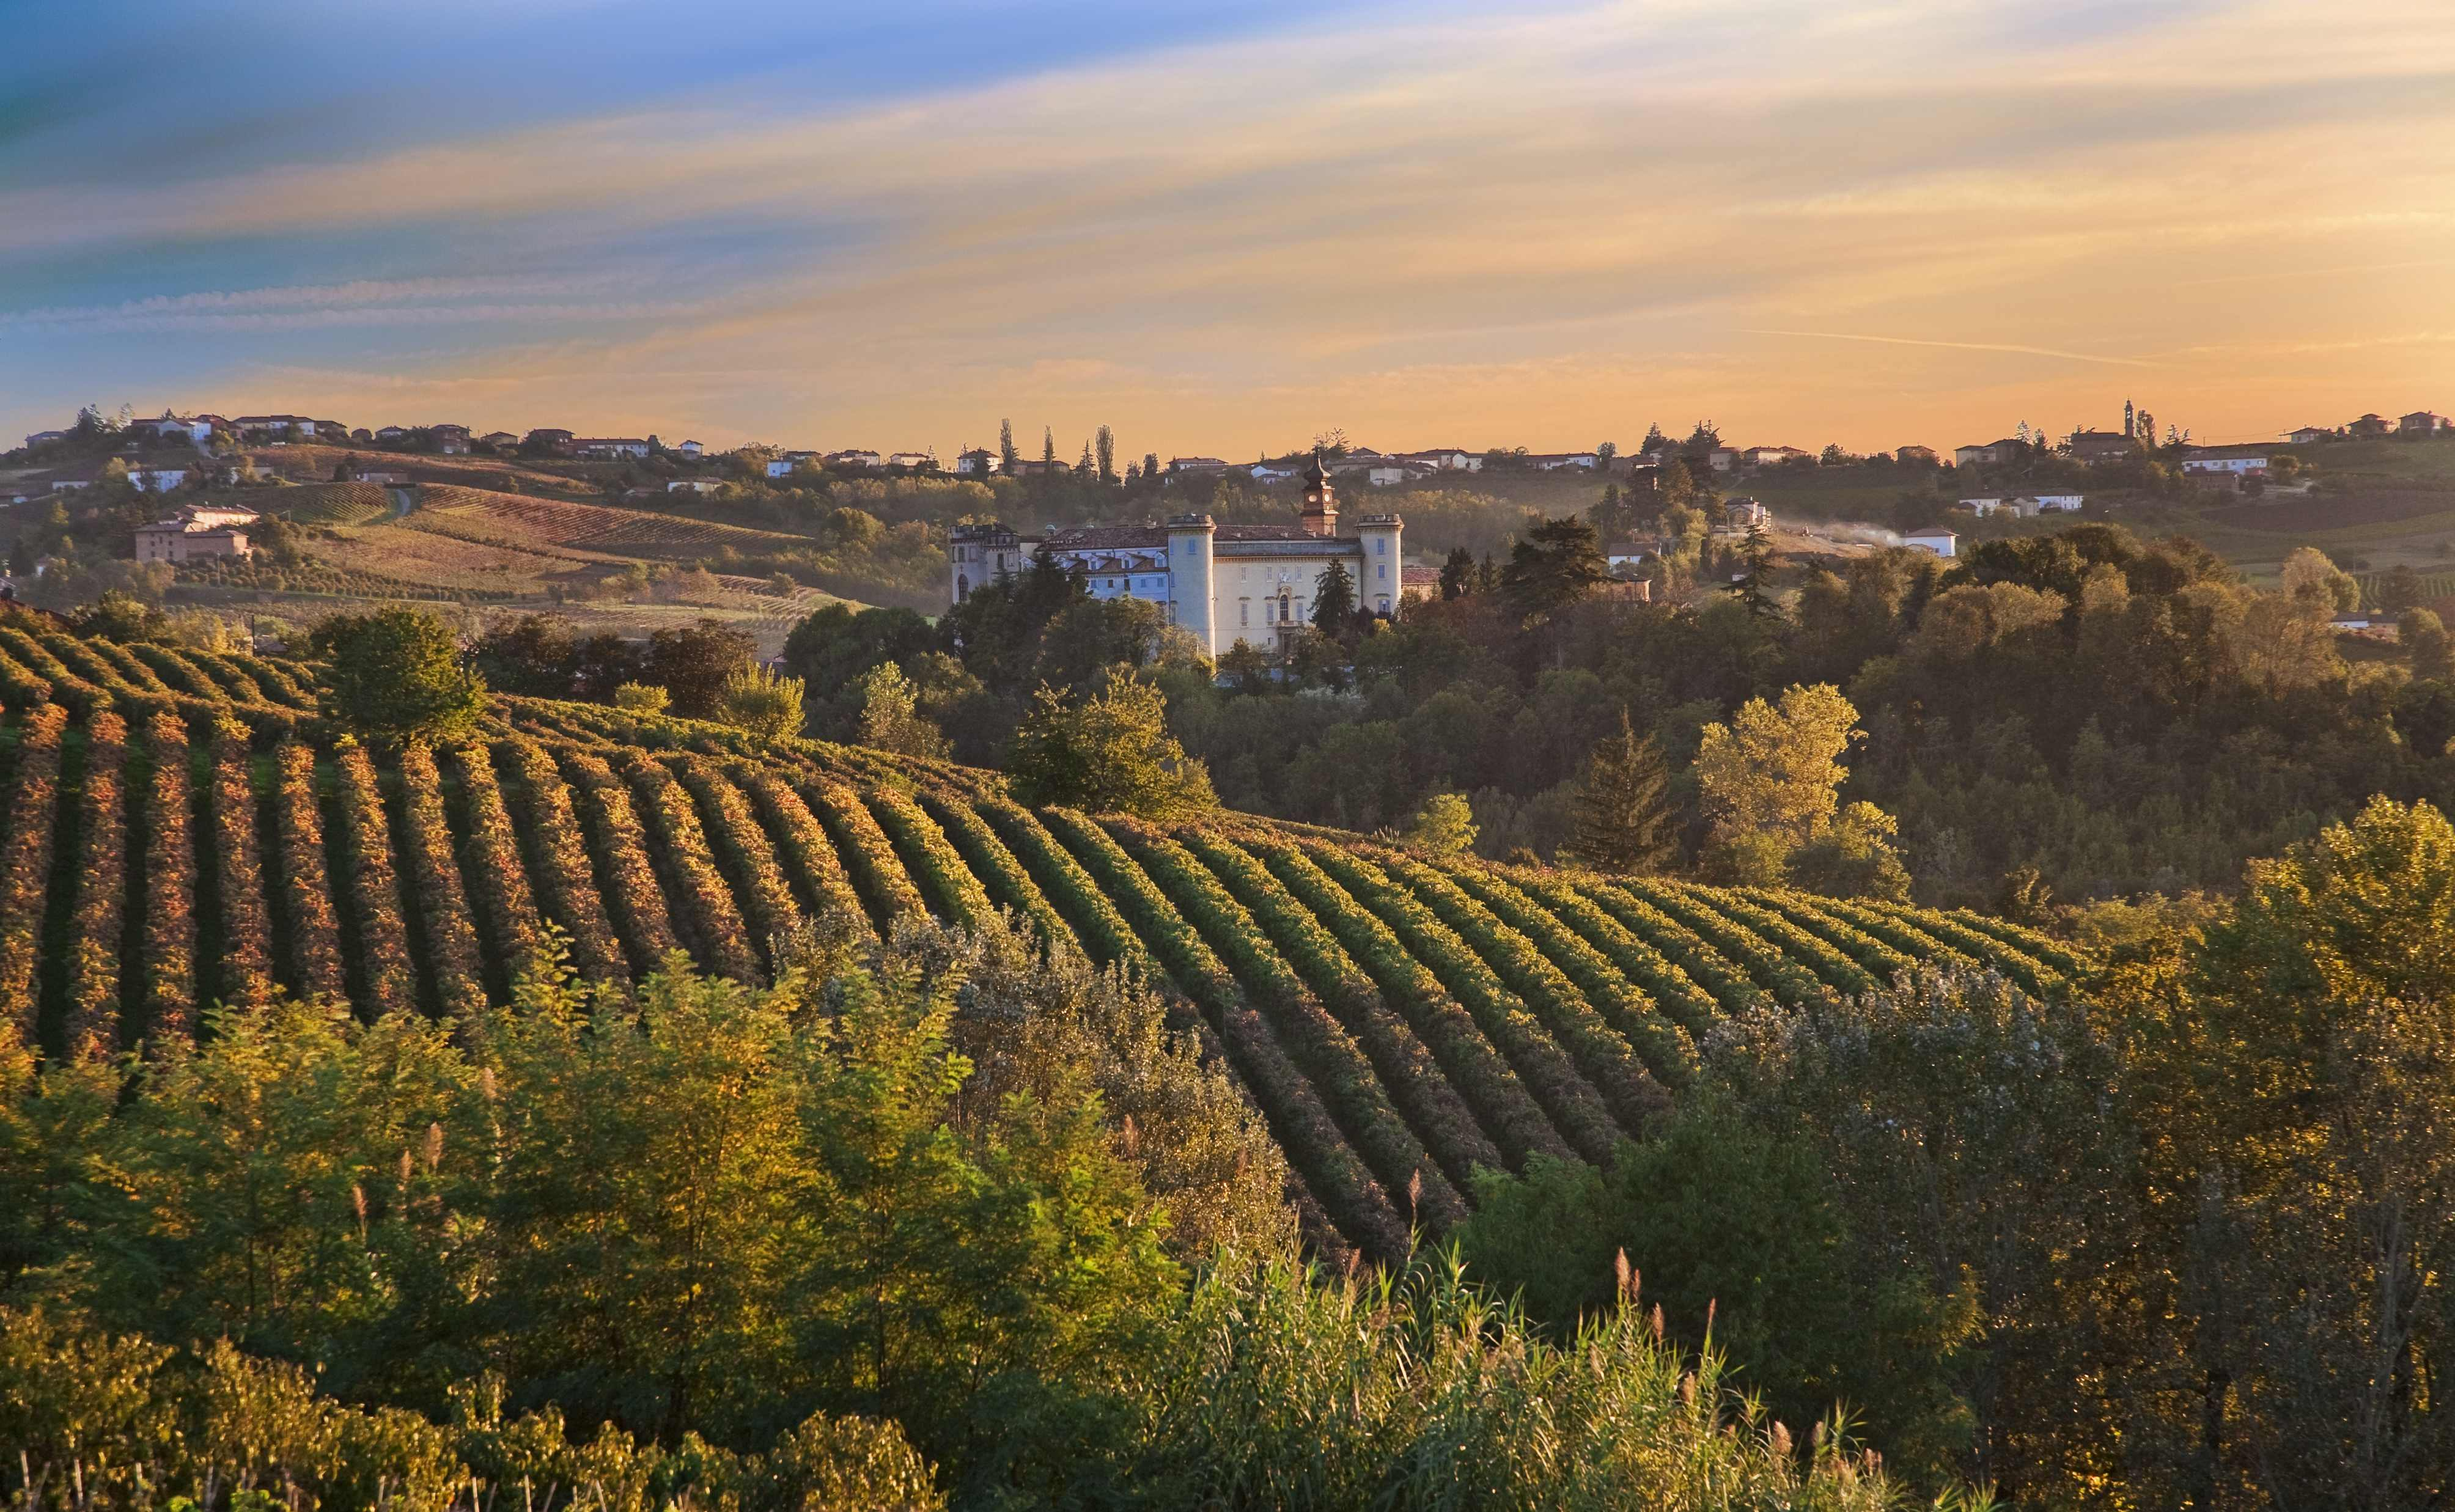 best wine tours in tuscany italy - photo#19